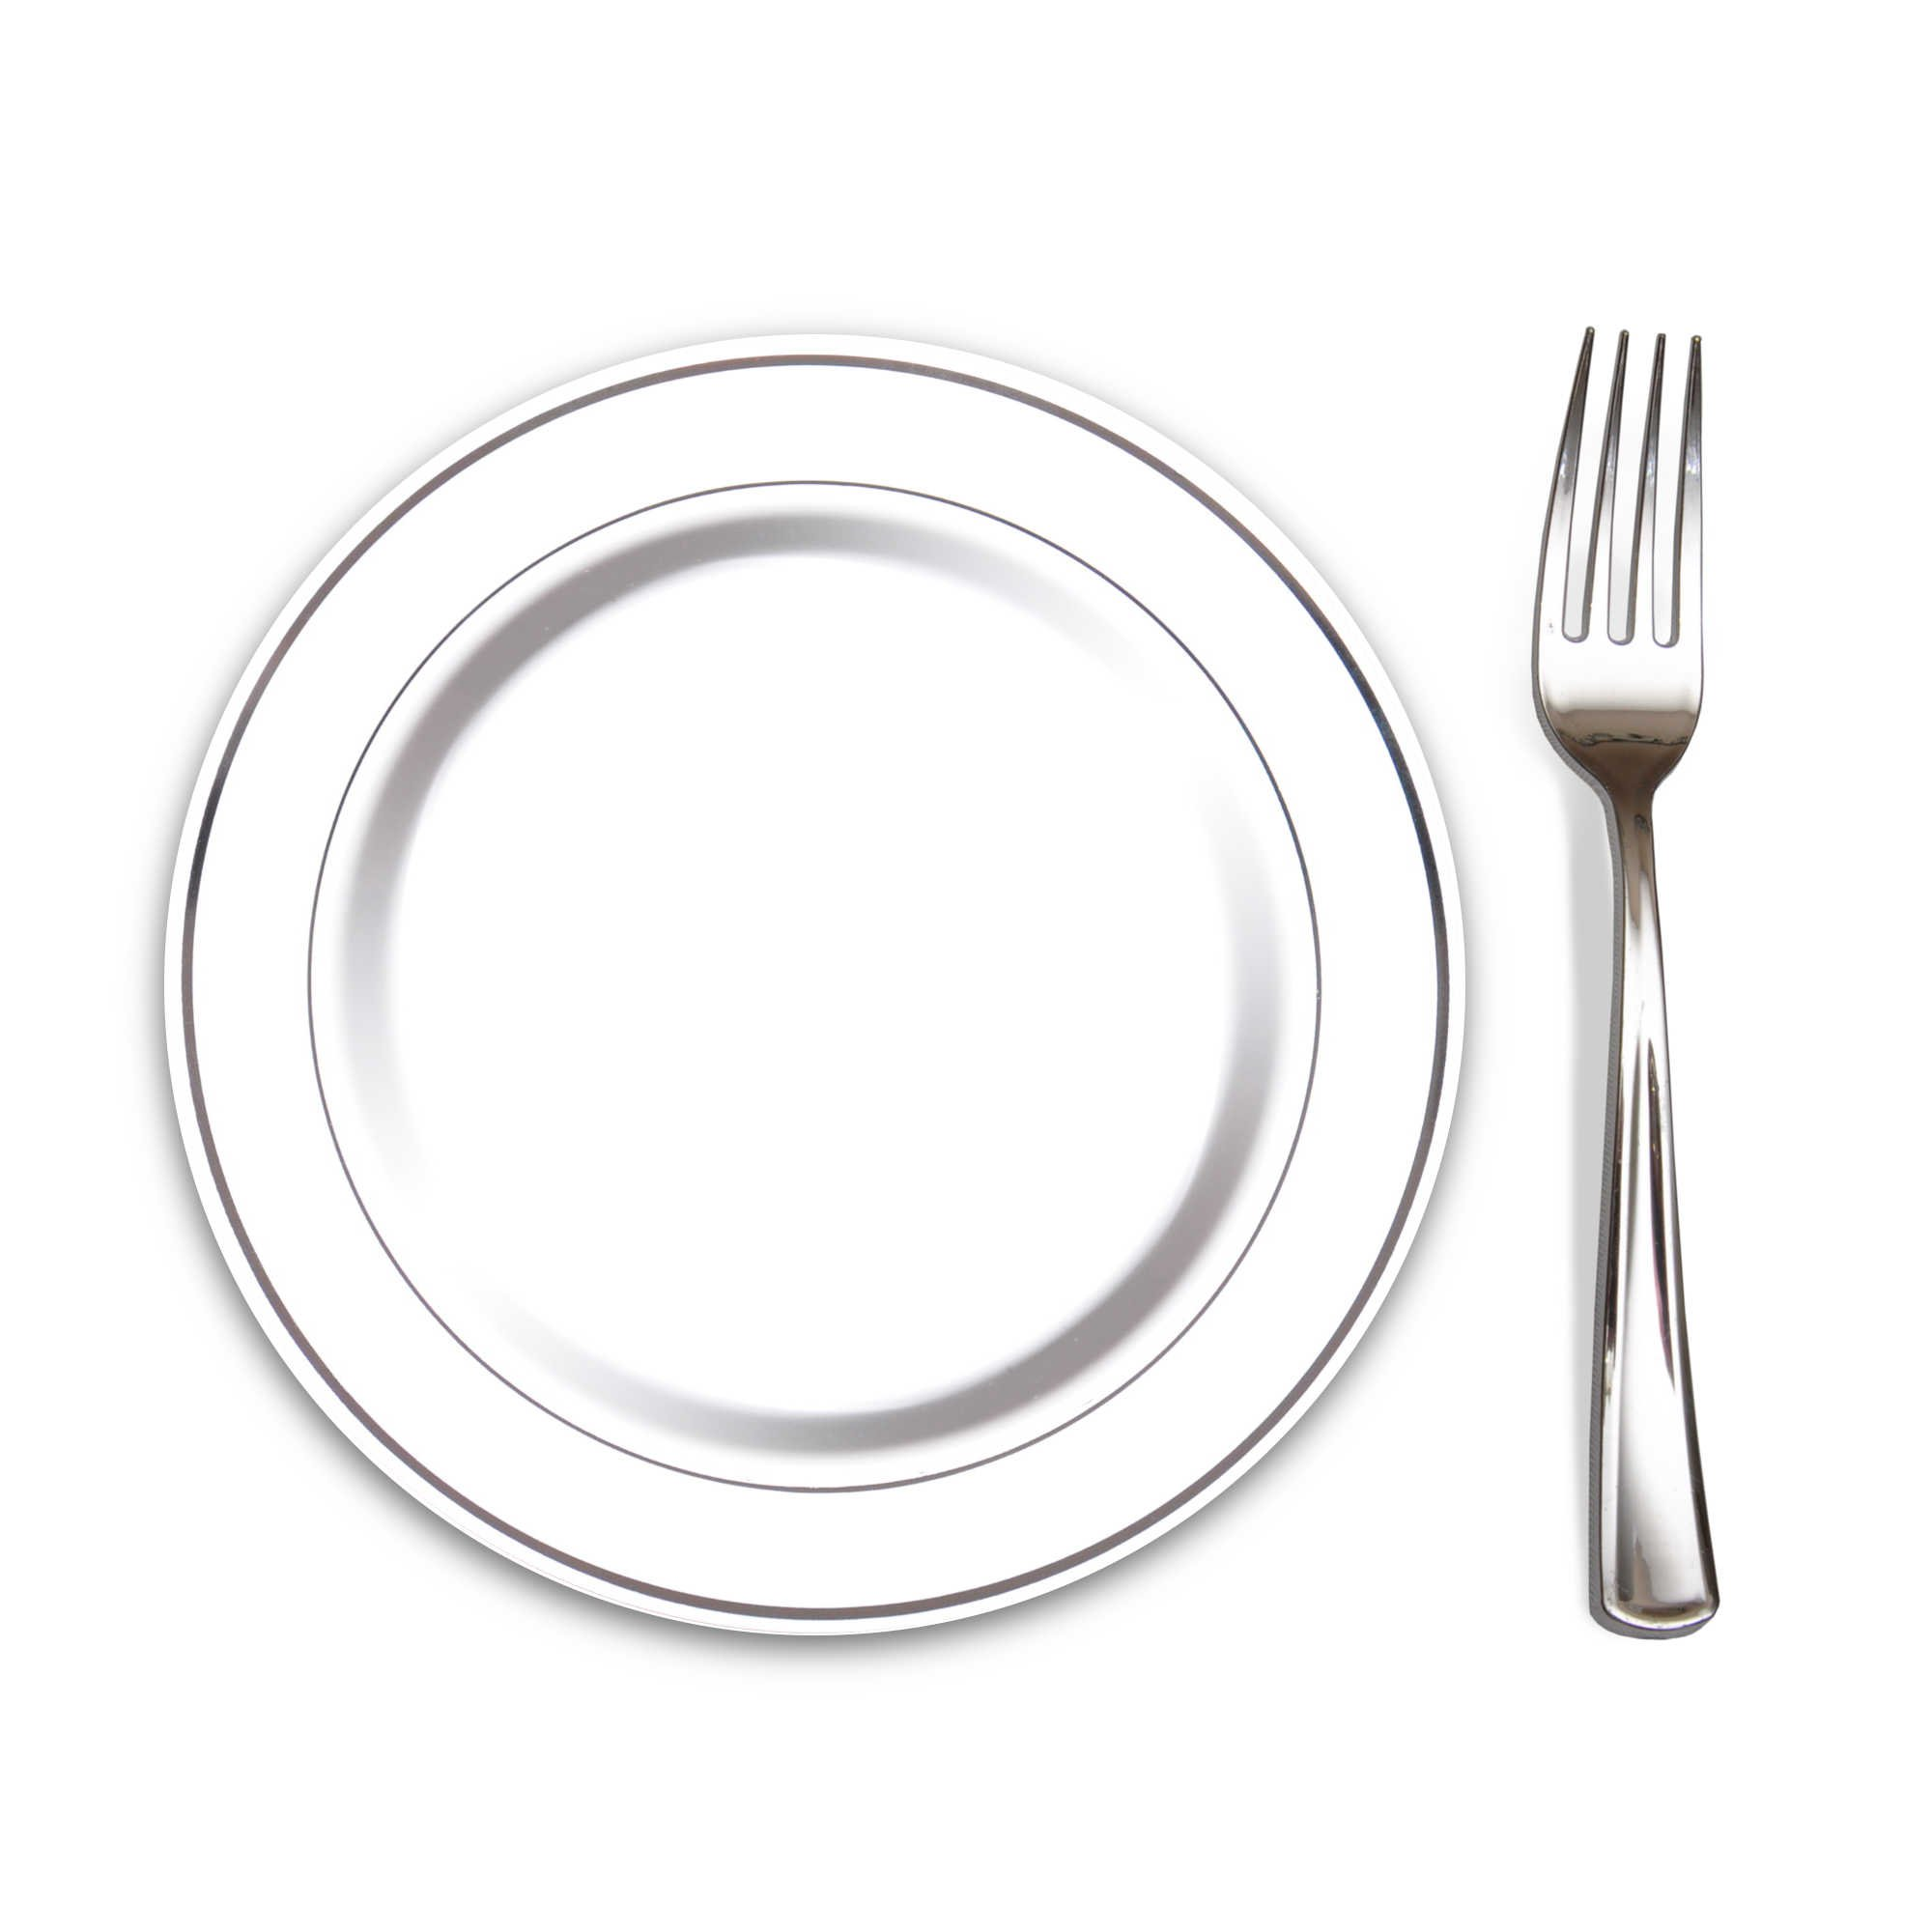 """100 Heavyweight Elegant Plastic Disposable 7.5"""" Small Plates & 100 Silver Plastic Forks, Perfect for Salads, Desserts, Tapas, Appetizers, Hors d' oeuvres, Parties, Catering, Wedding Cakes by Precisely Plastic"""